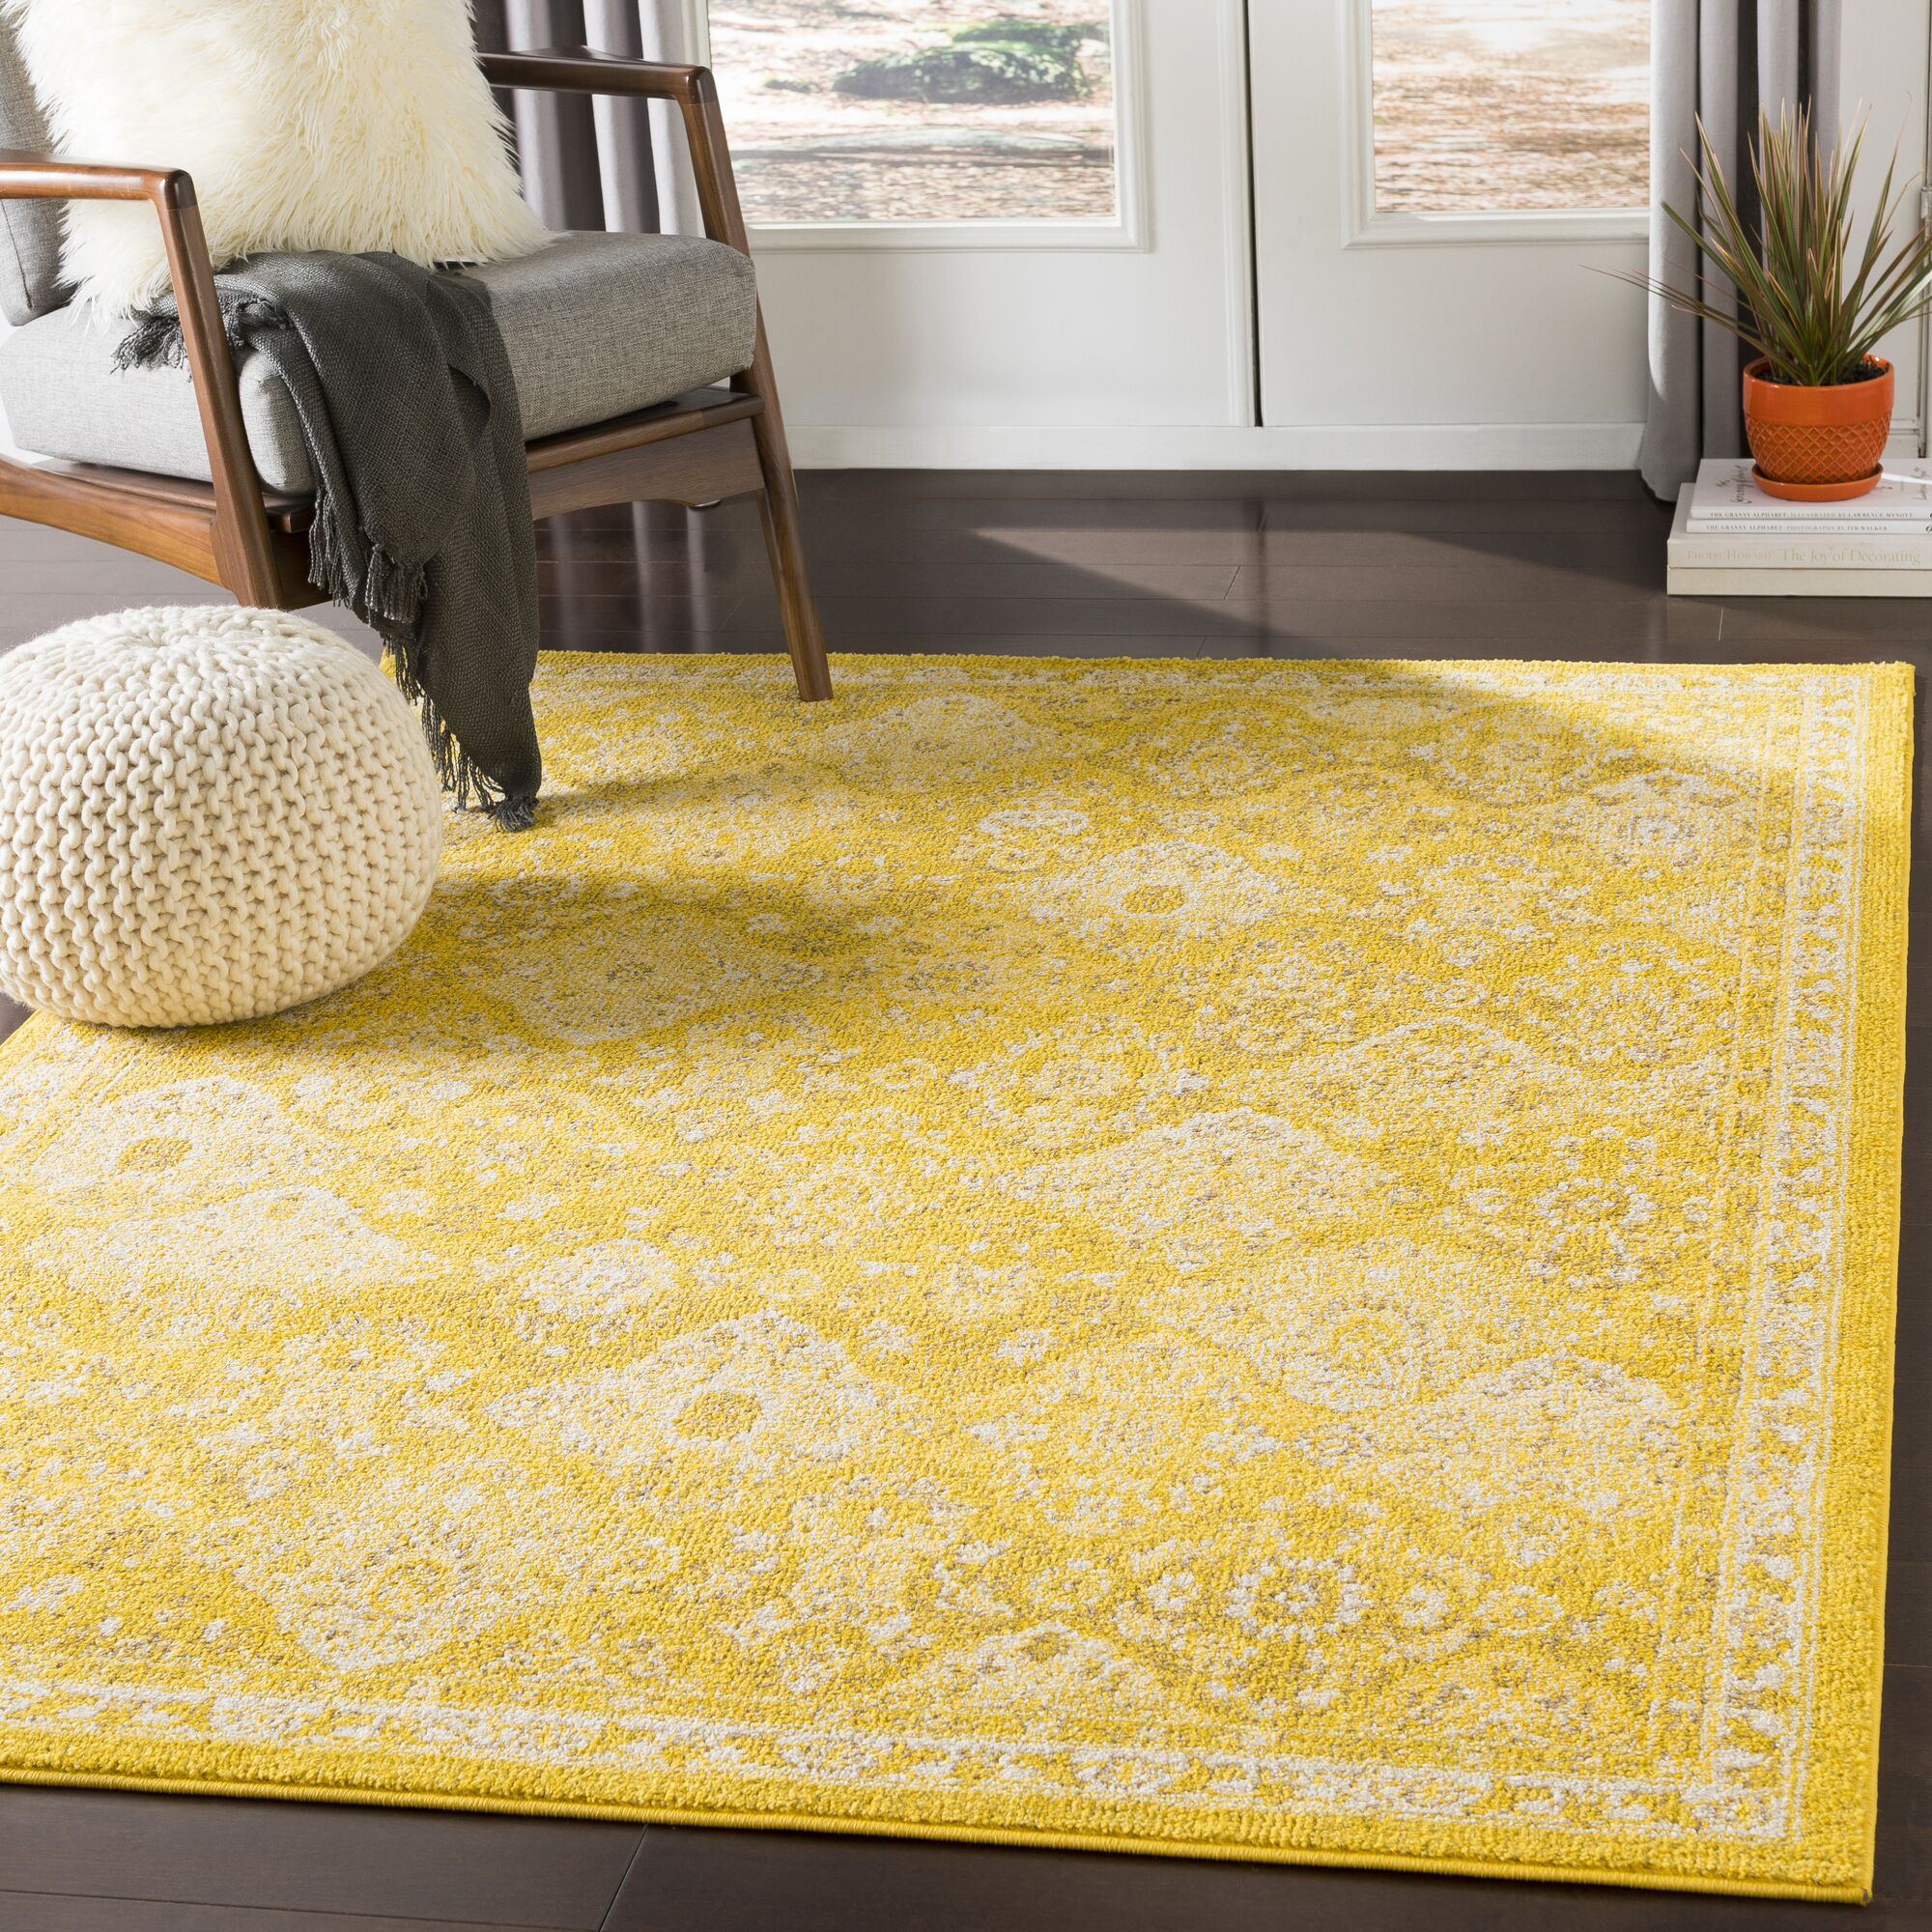 Berry Medallion Yellow Area Rug Rug Size: Rectangle 5'3